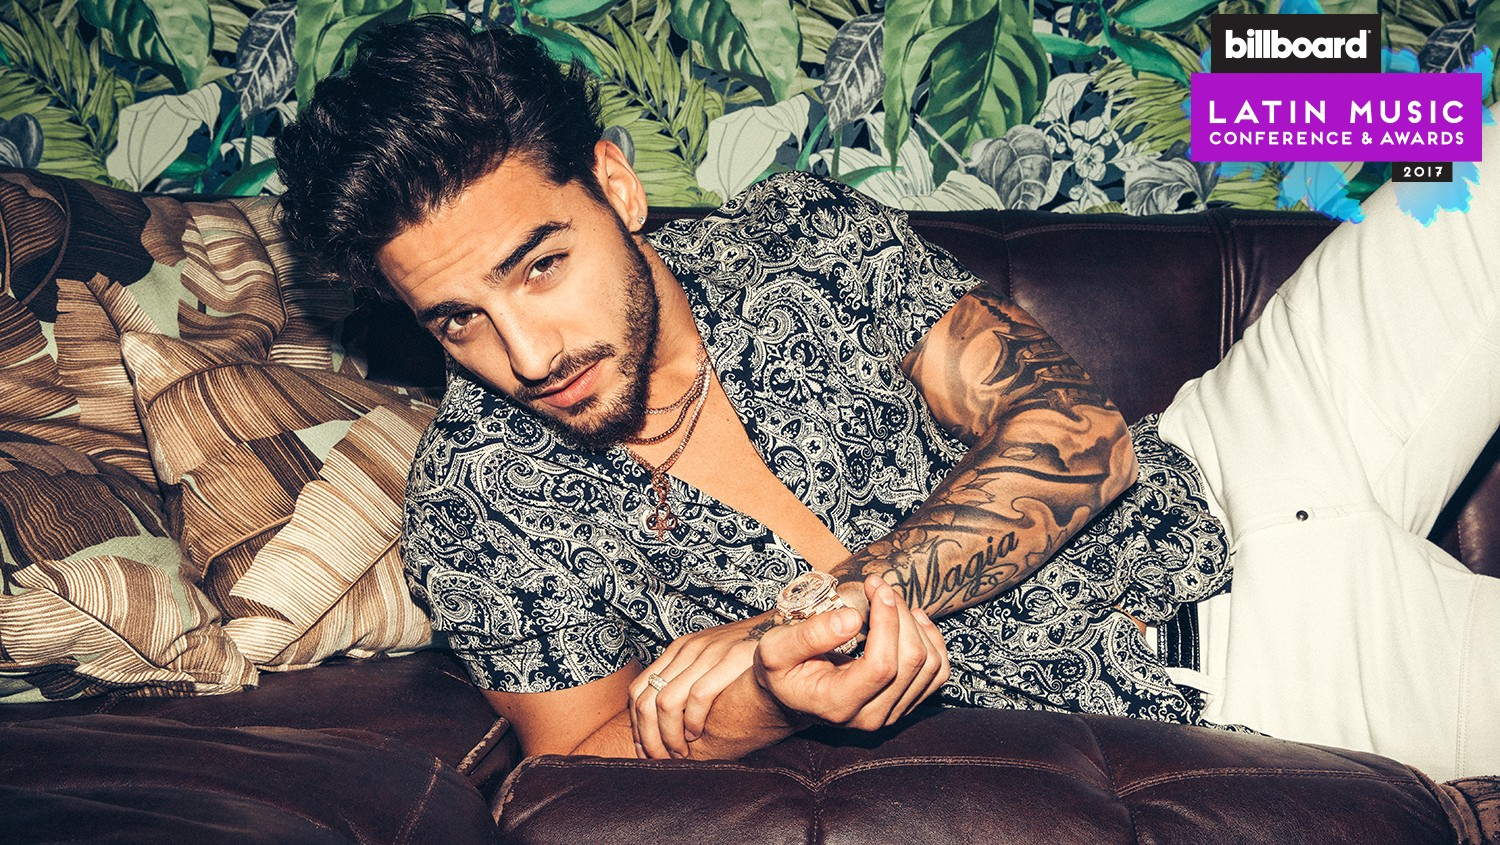 Maluma photographed March 27 at Doheny Room in West Hollywood.